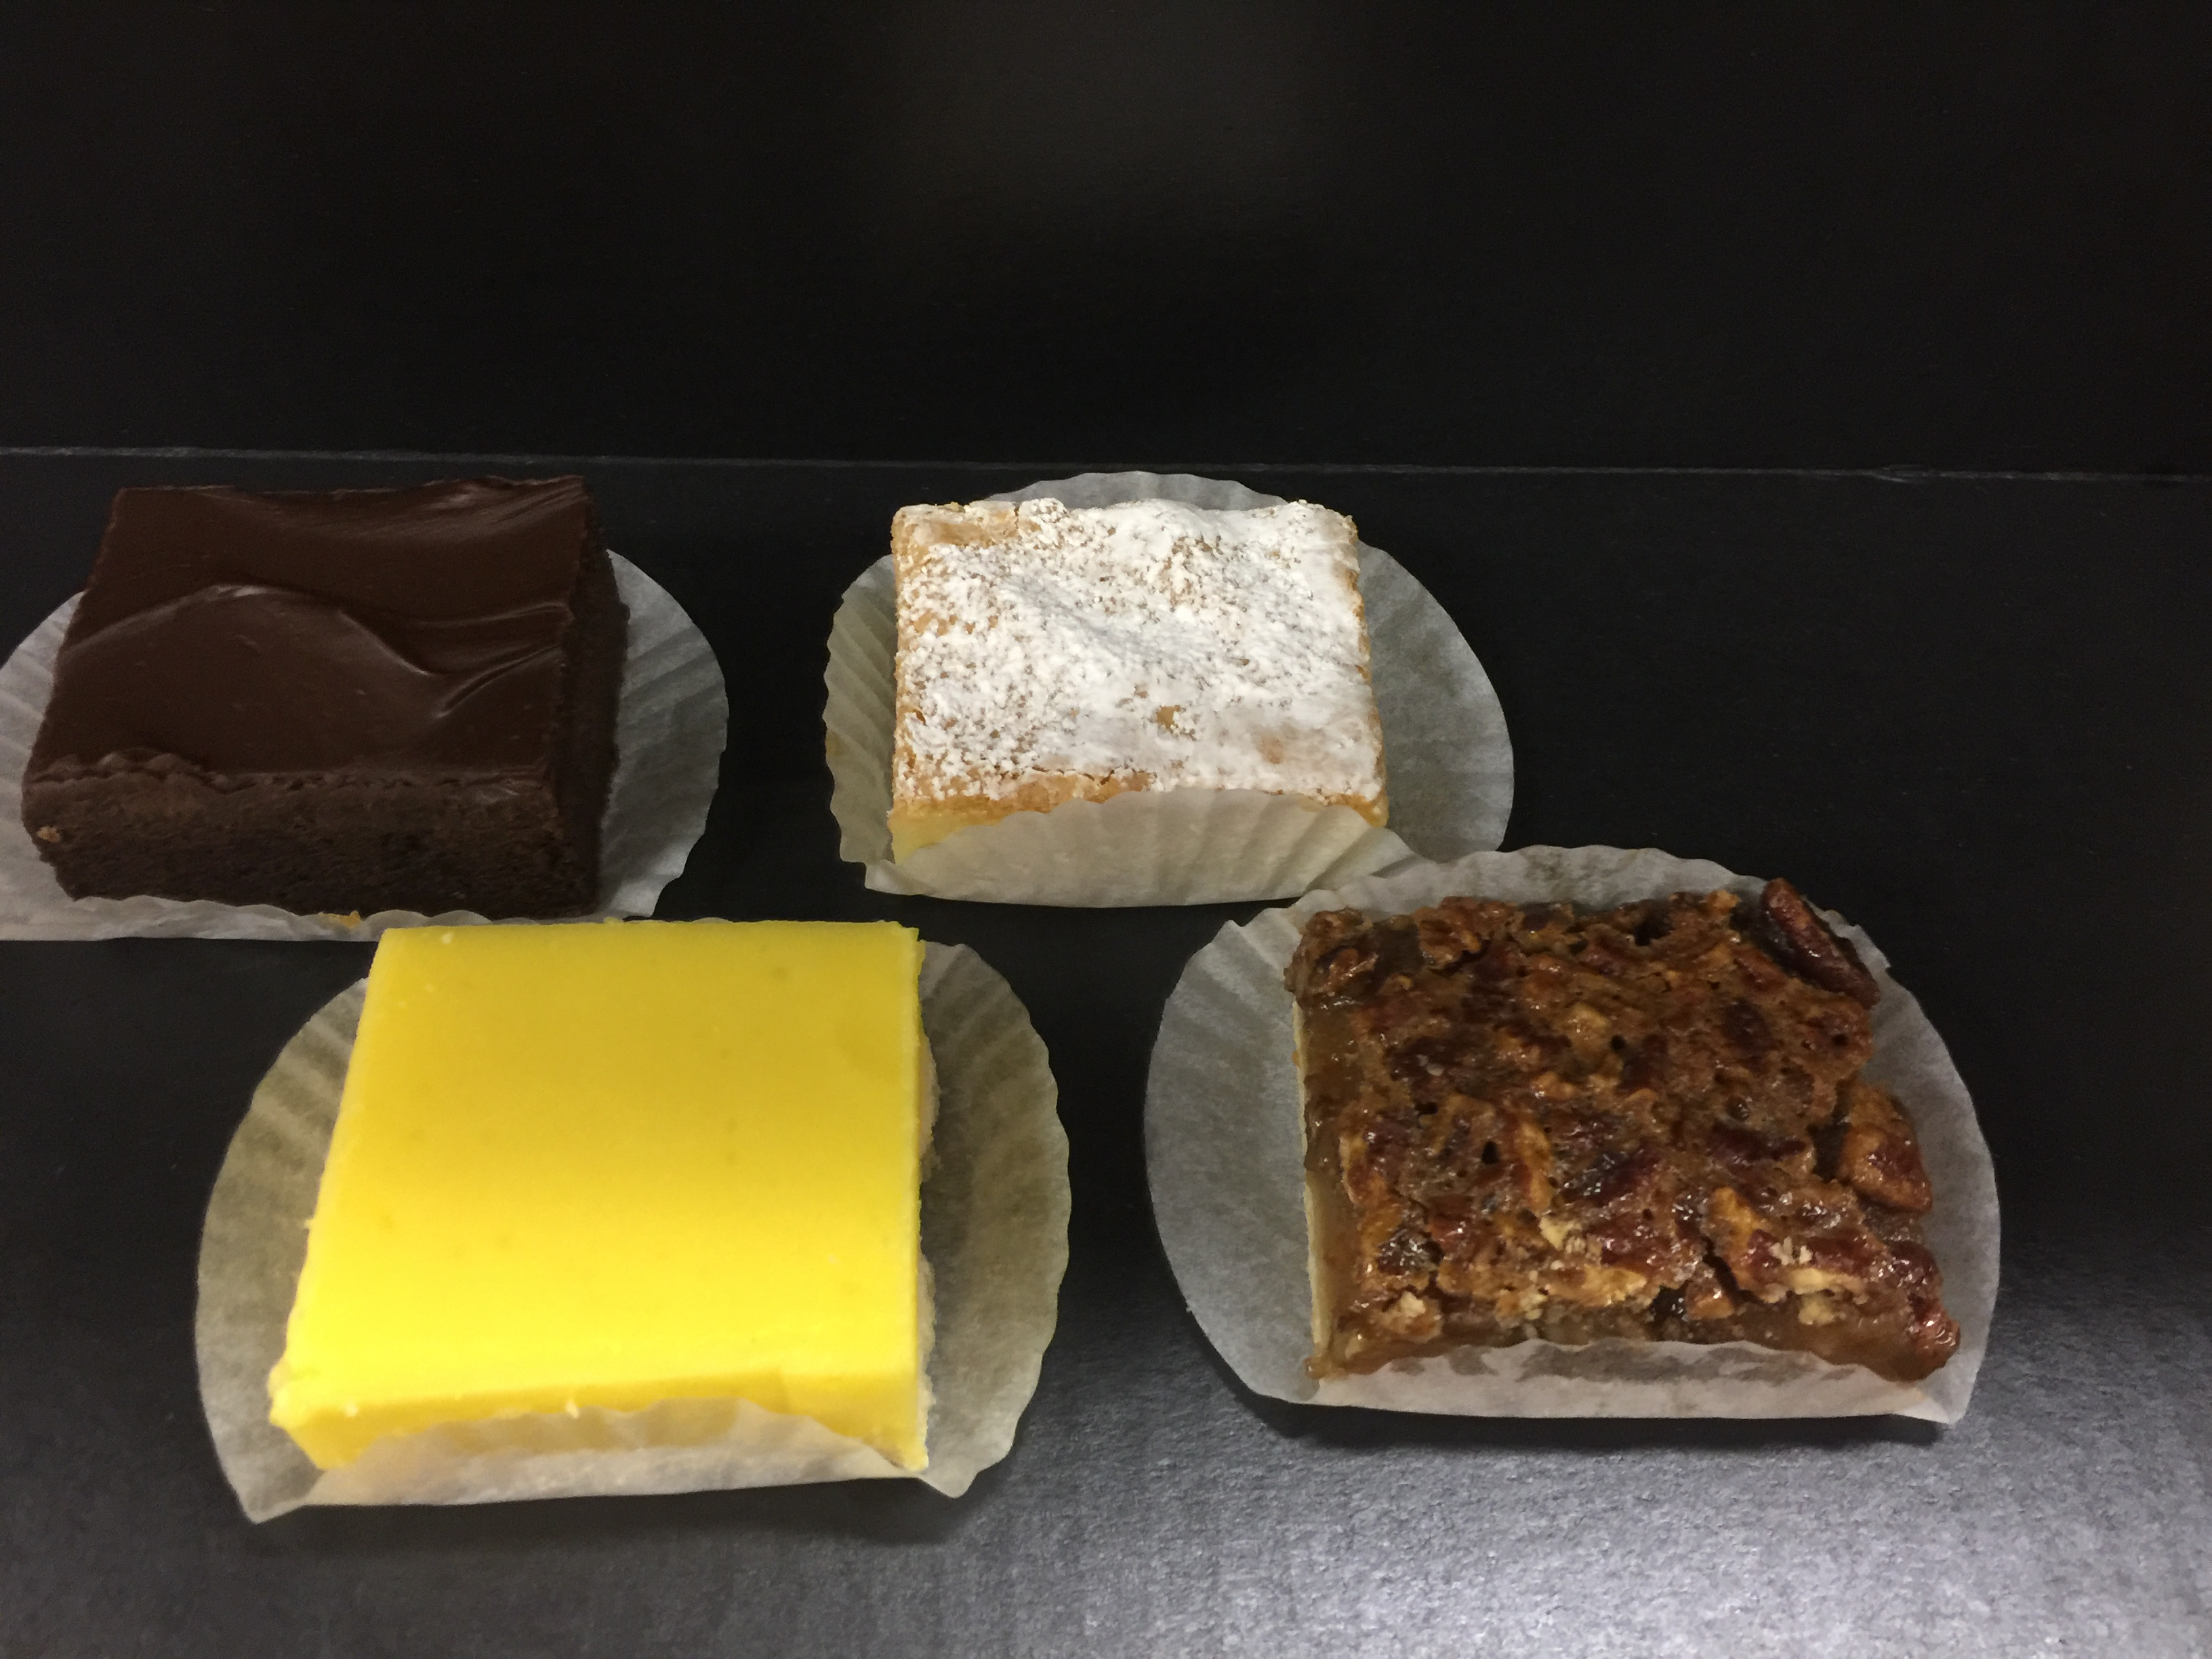 Assorted pastry bars